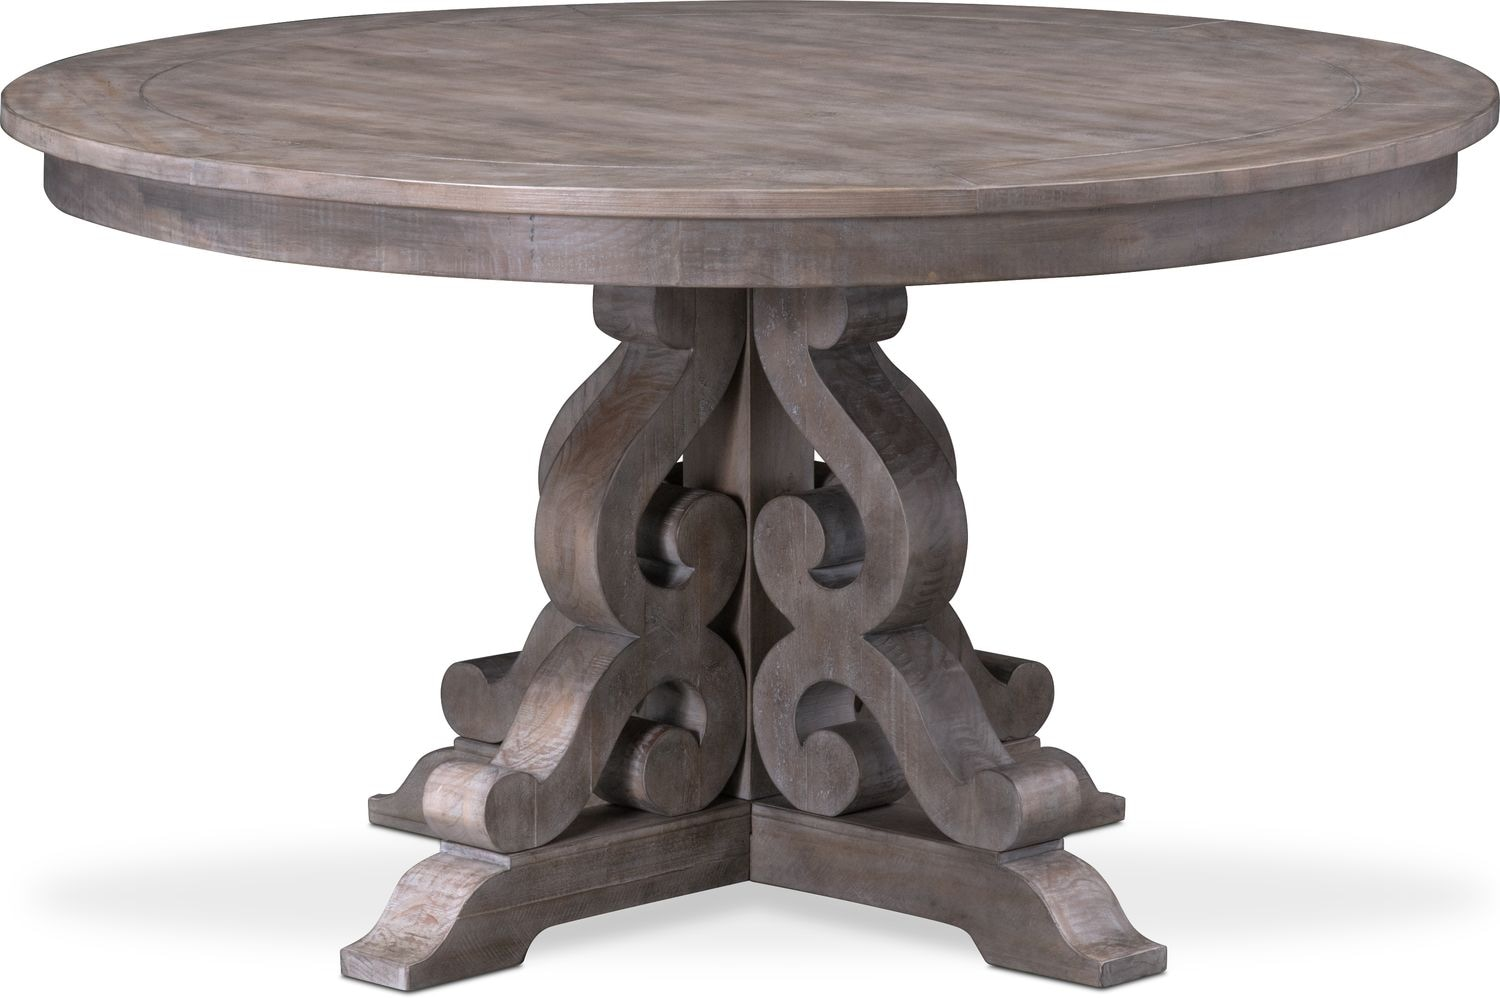 Indoor Click To Change Charthouse Round Table American Signature Furniture Round Tables Ikea Round Tables That Seat 8 houzz-02 Round Dining Tables